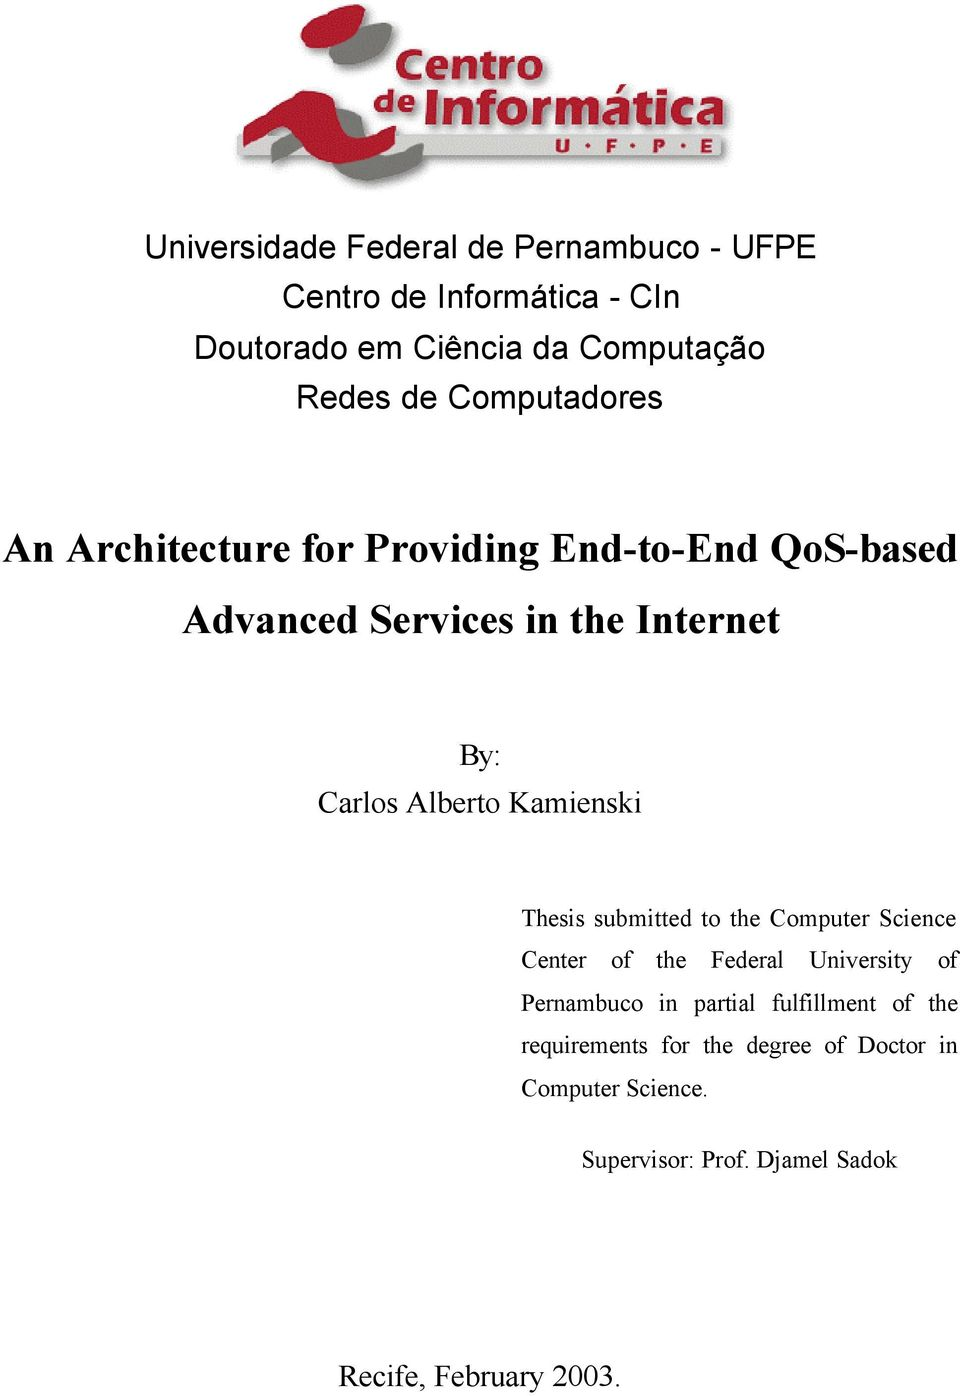 Kamienski Thesis submitted to the Computer Science Center of the Federal University of Pernambuco in partial